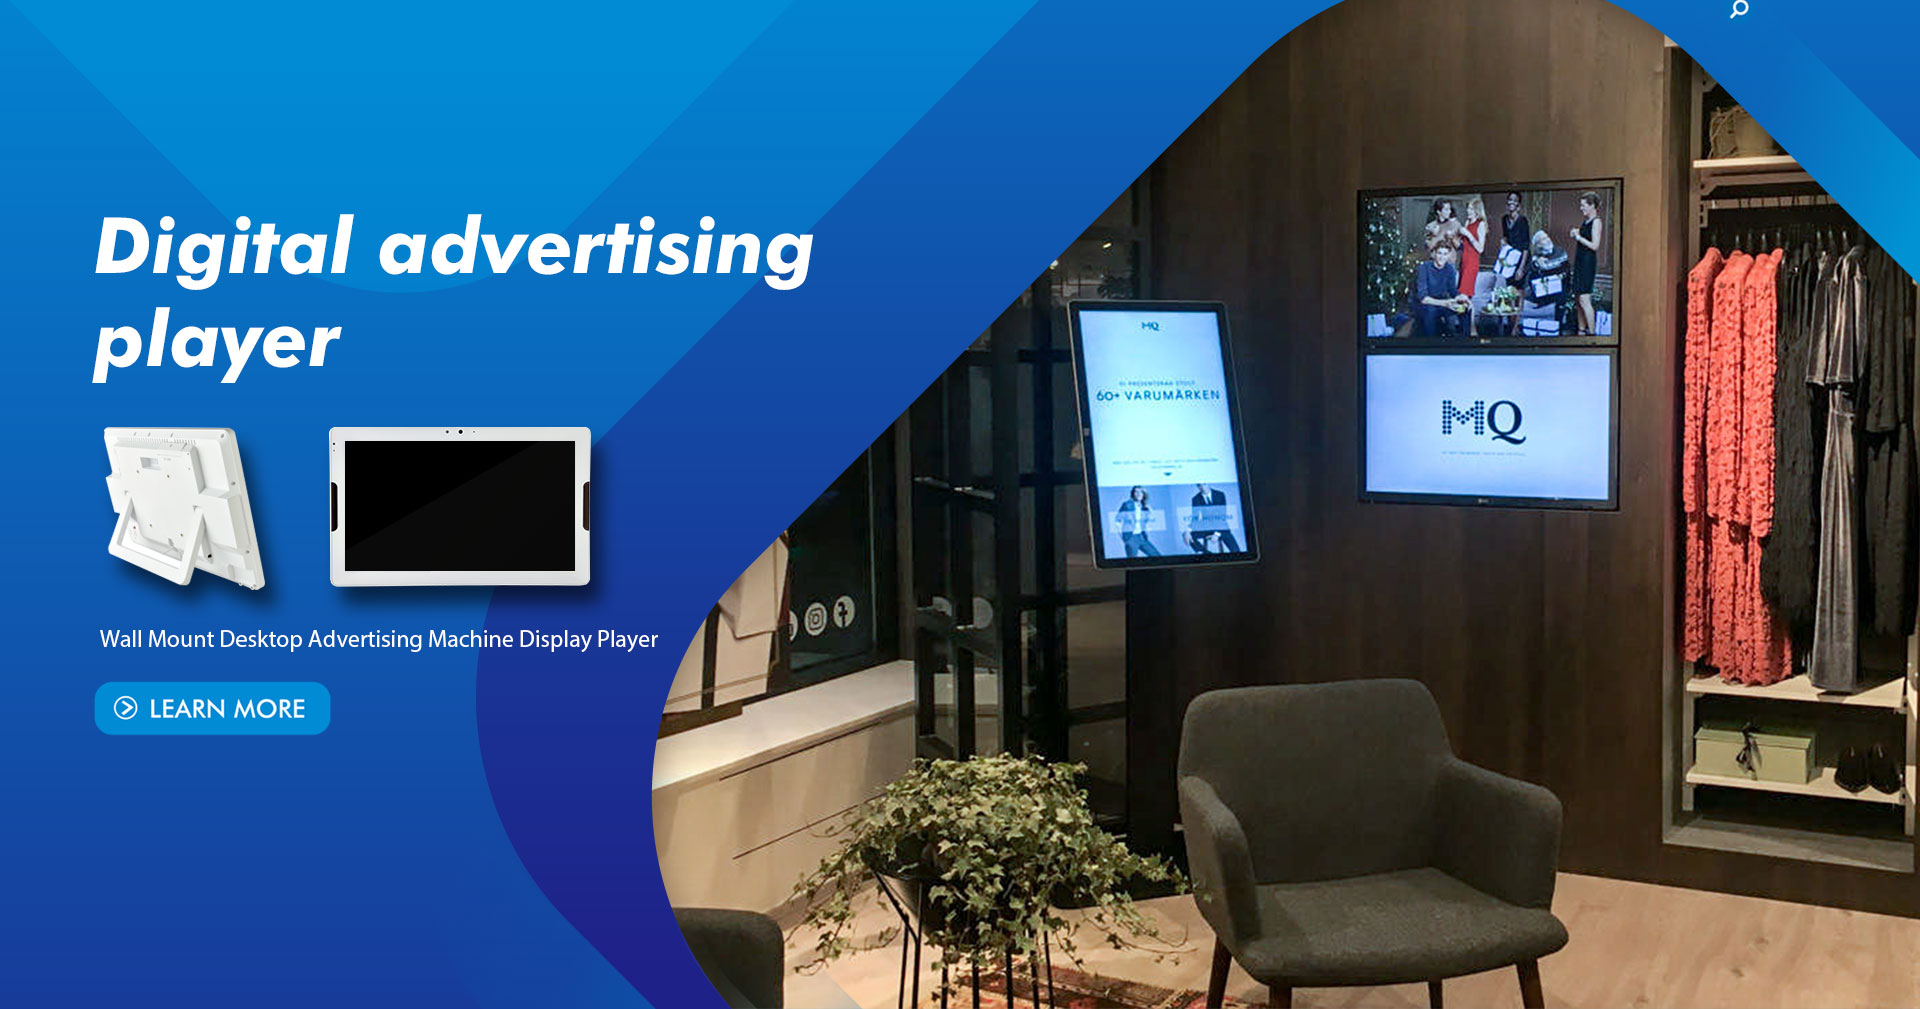 Digital advertising player